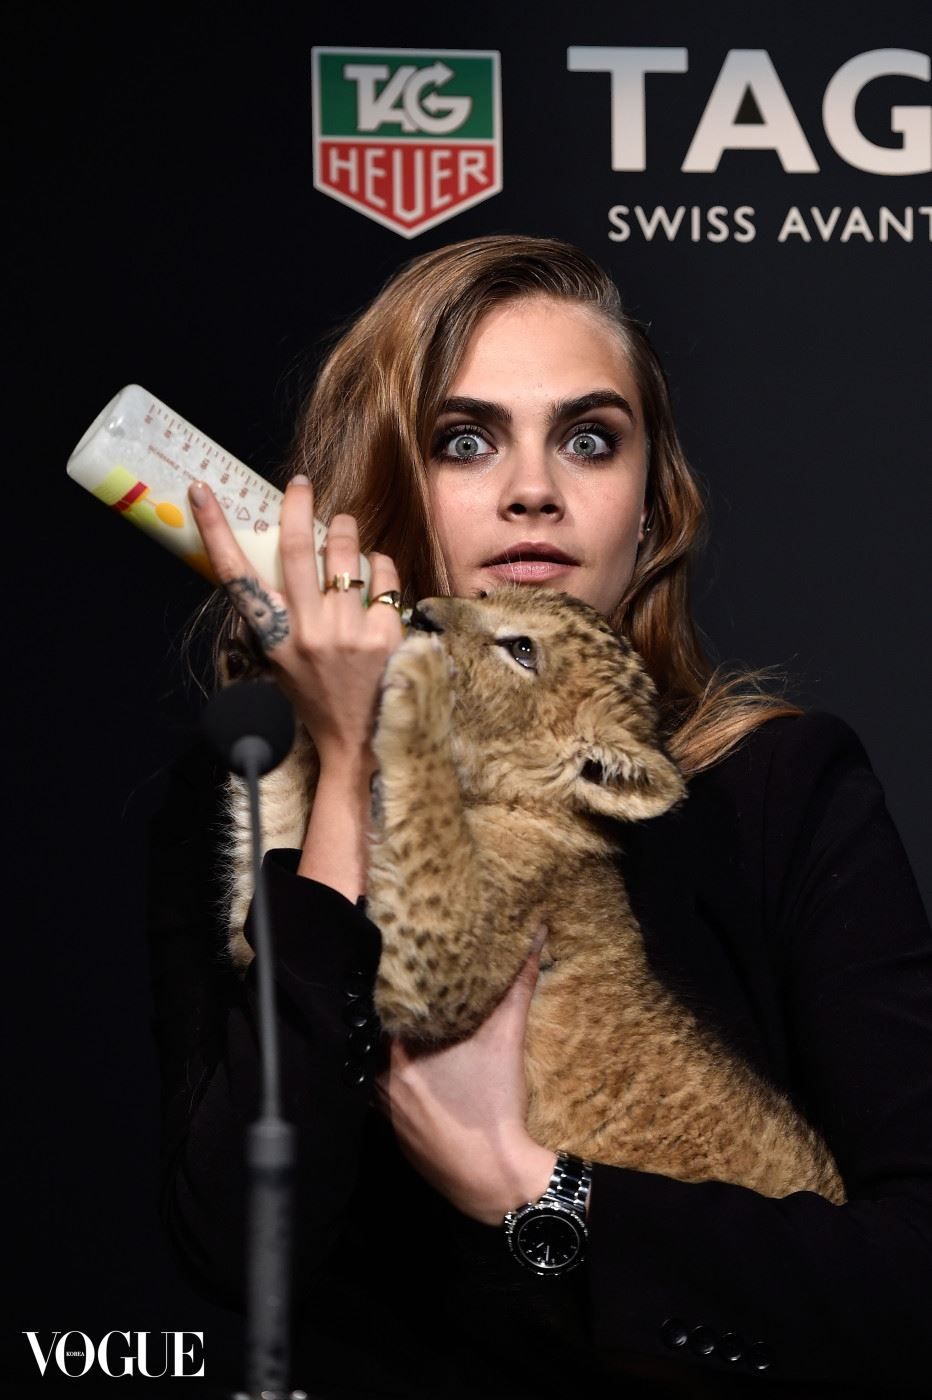 PARIS, FRANCE - JANUARY 23:  Model Cara Delevingne poses with a baby lion as she joins TAG Heuer as Brand Ambassador to launch the new 2015 campaign at Palais des Beaux-Arts on January 23, 2015 in Paris, France.  (Photo by Pascal Le Segretain/Getty Images for TAG Heuer)